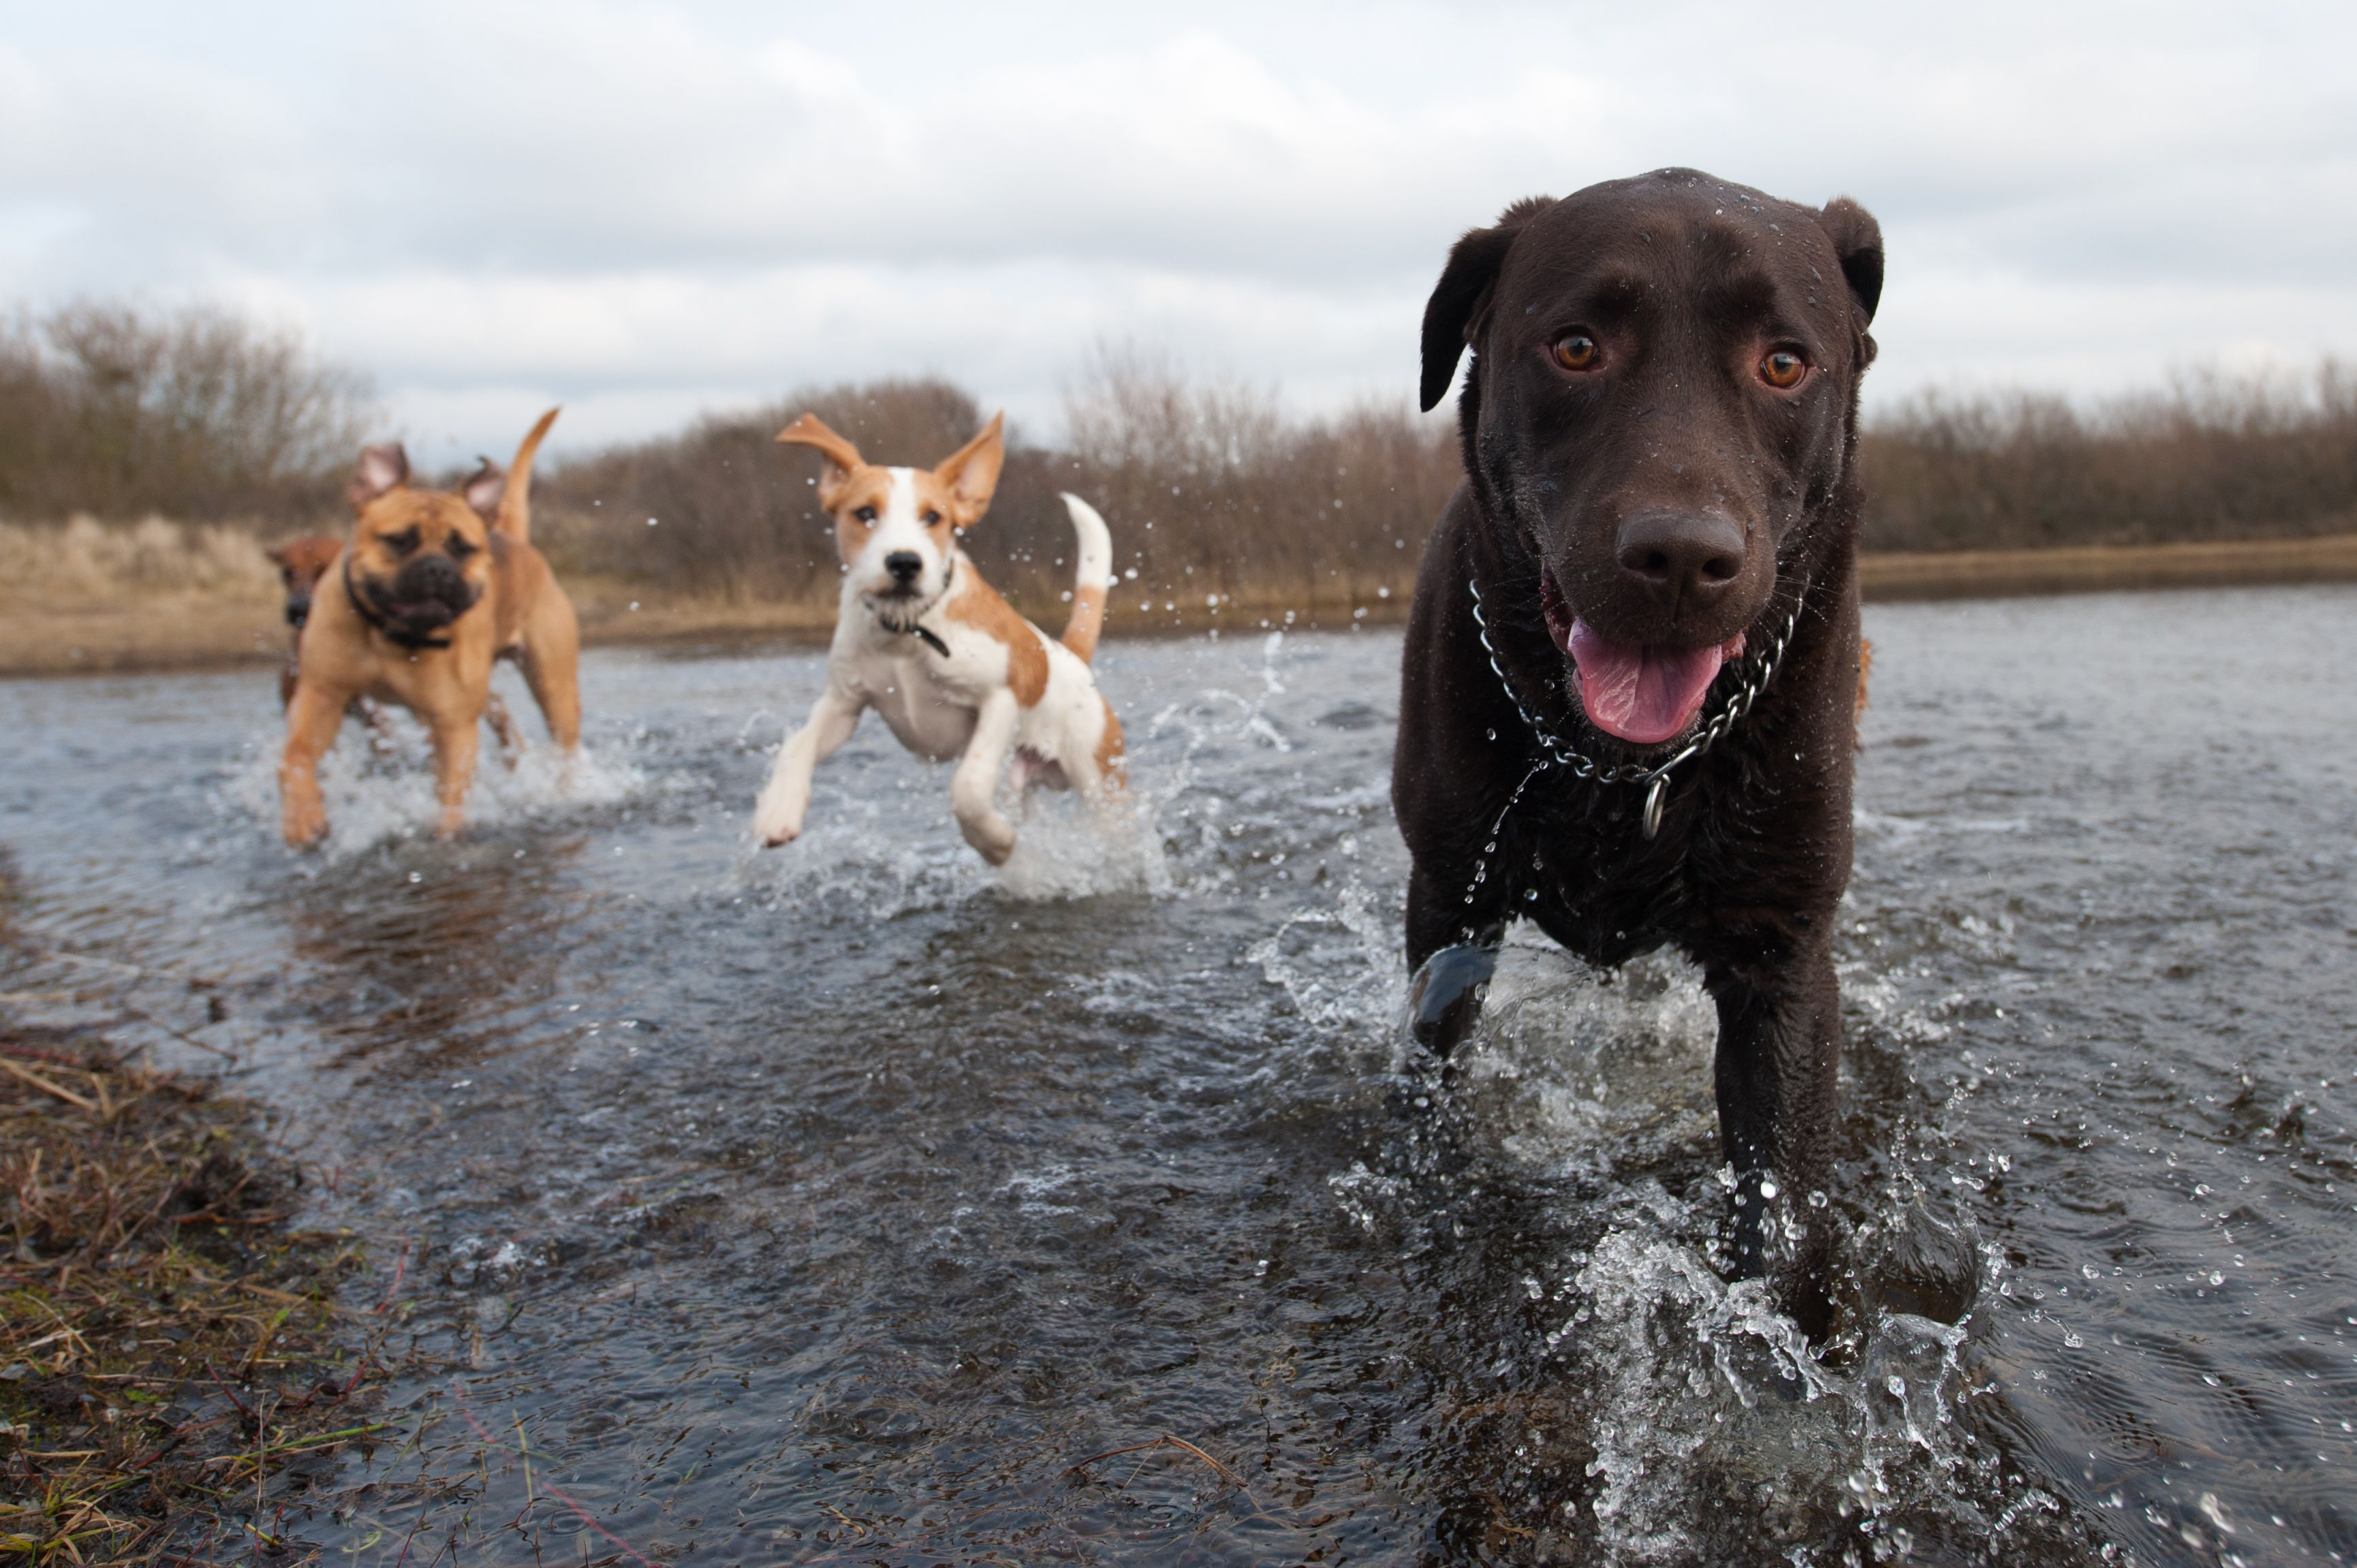 Playing in a river with all my friends!! Could not ask for a better day! #dog #dogs #puppy #puppies #pet #pets #travel #trip #traveling #PetTravel #cute #beach #happy